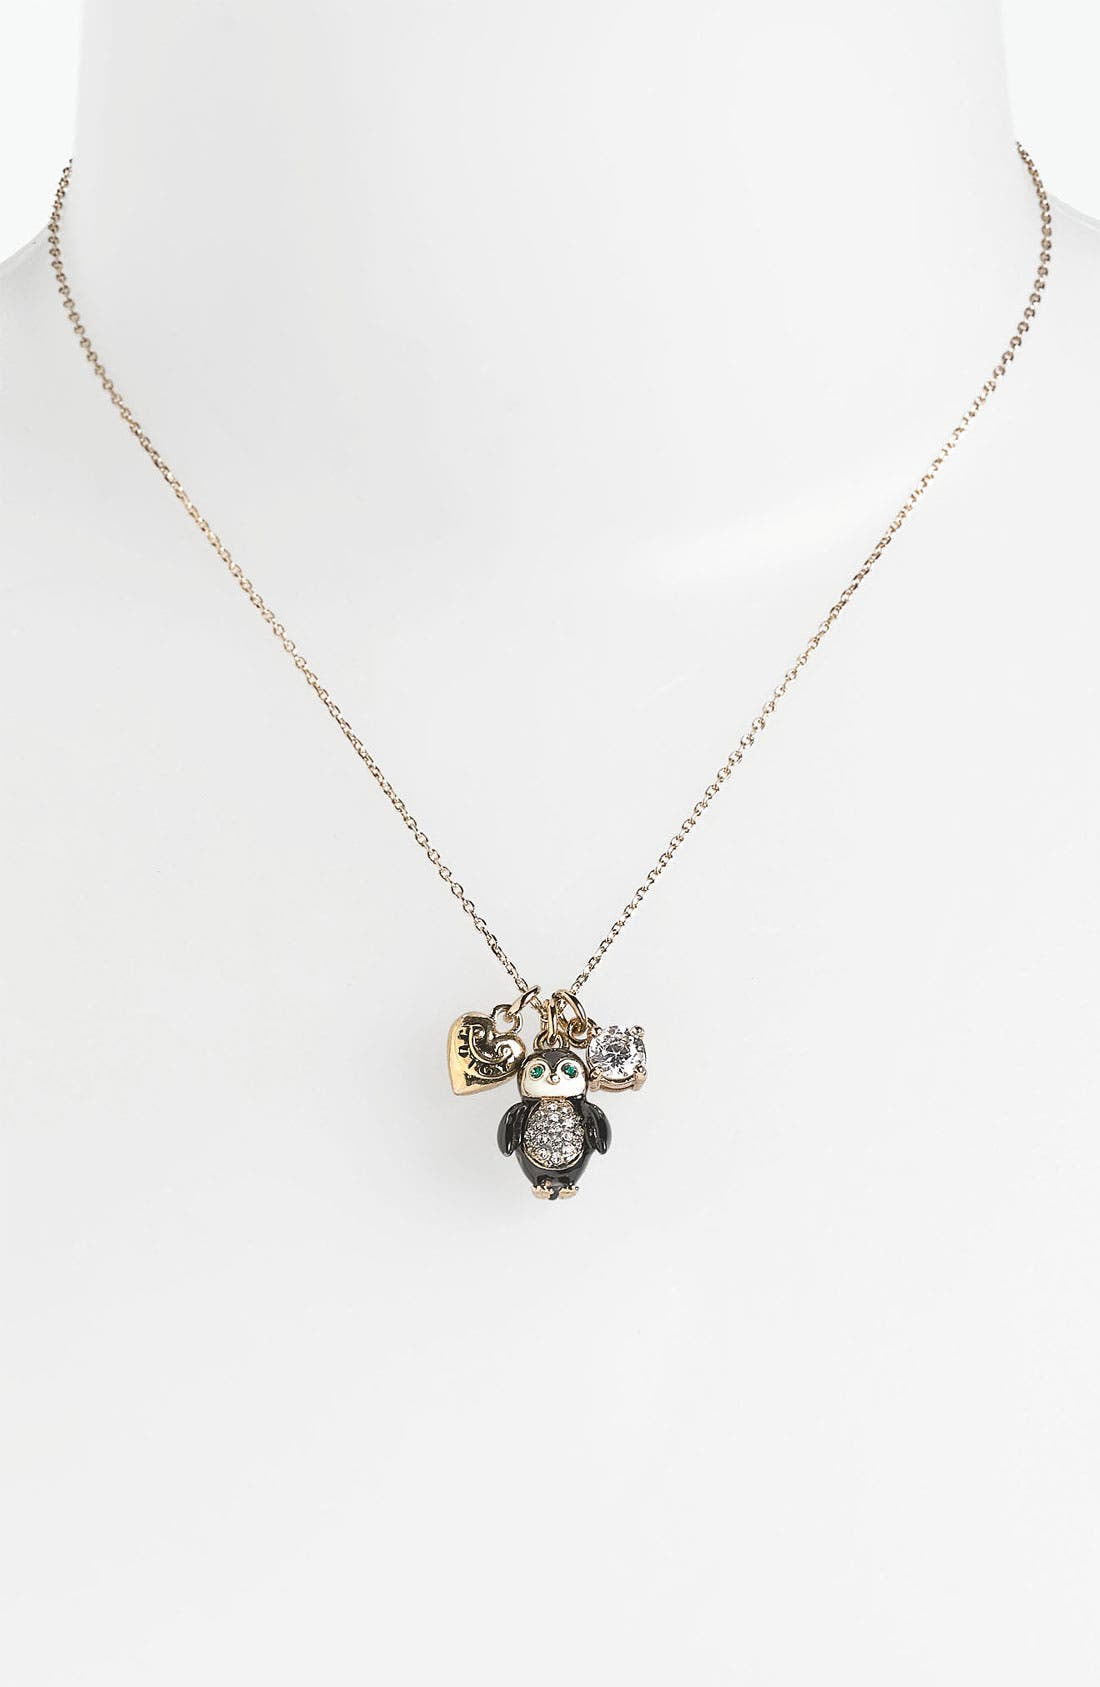 Alternate Image 1 Selected - Juicy Couture 'Perfectly Gifted' Boxed Pendant Necklace